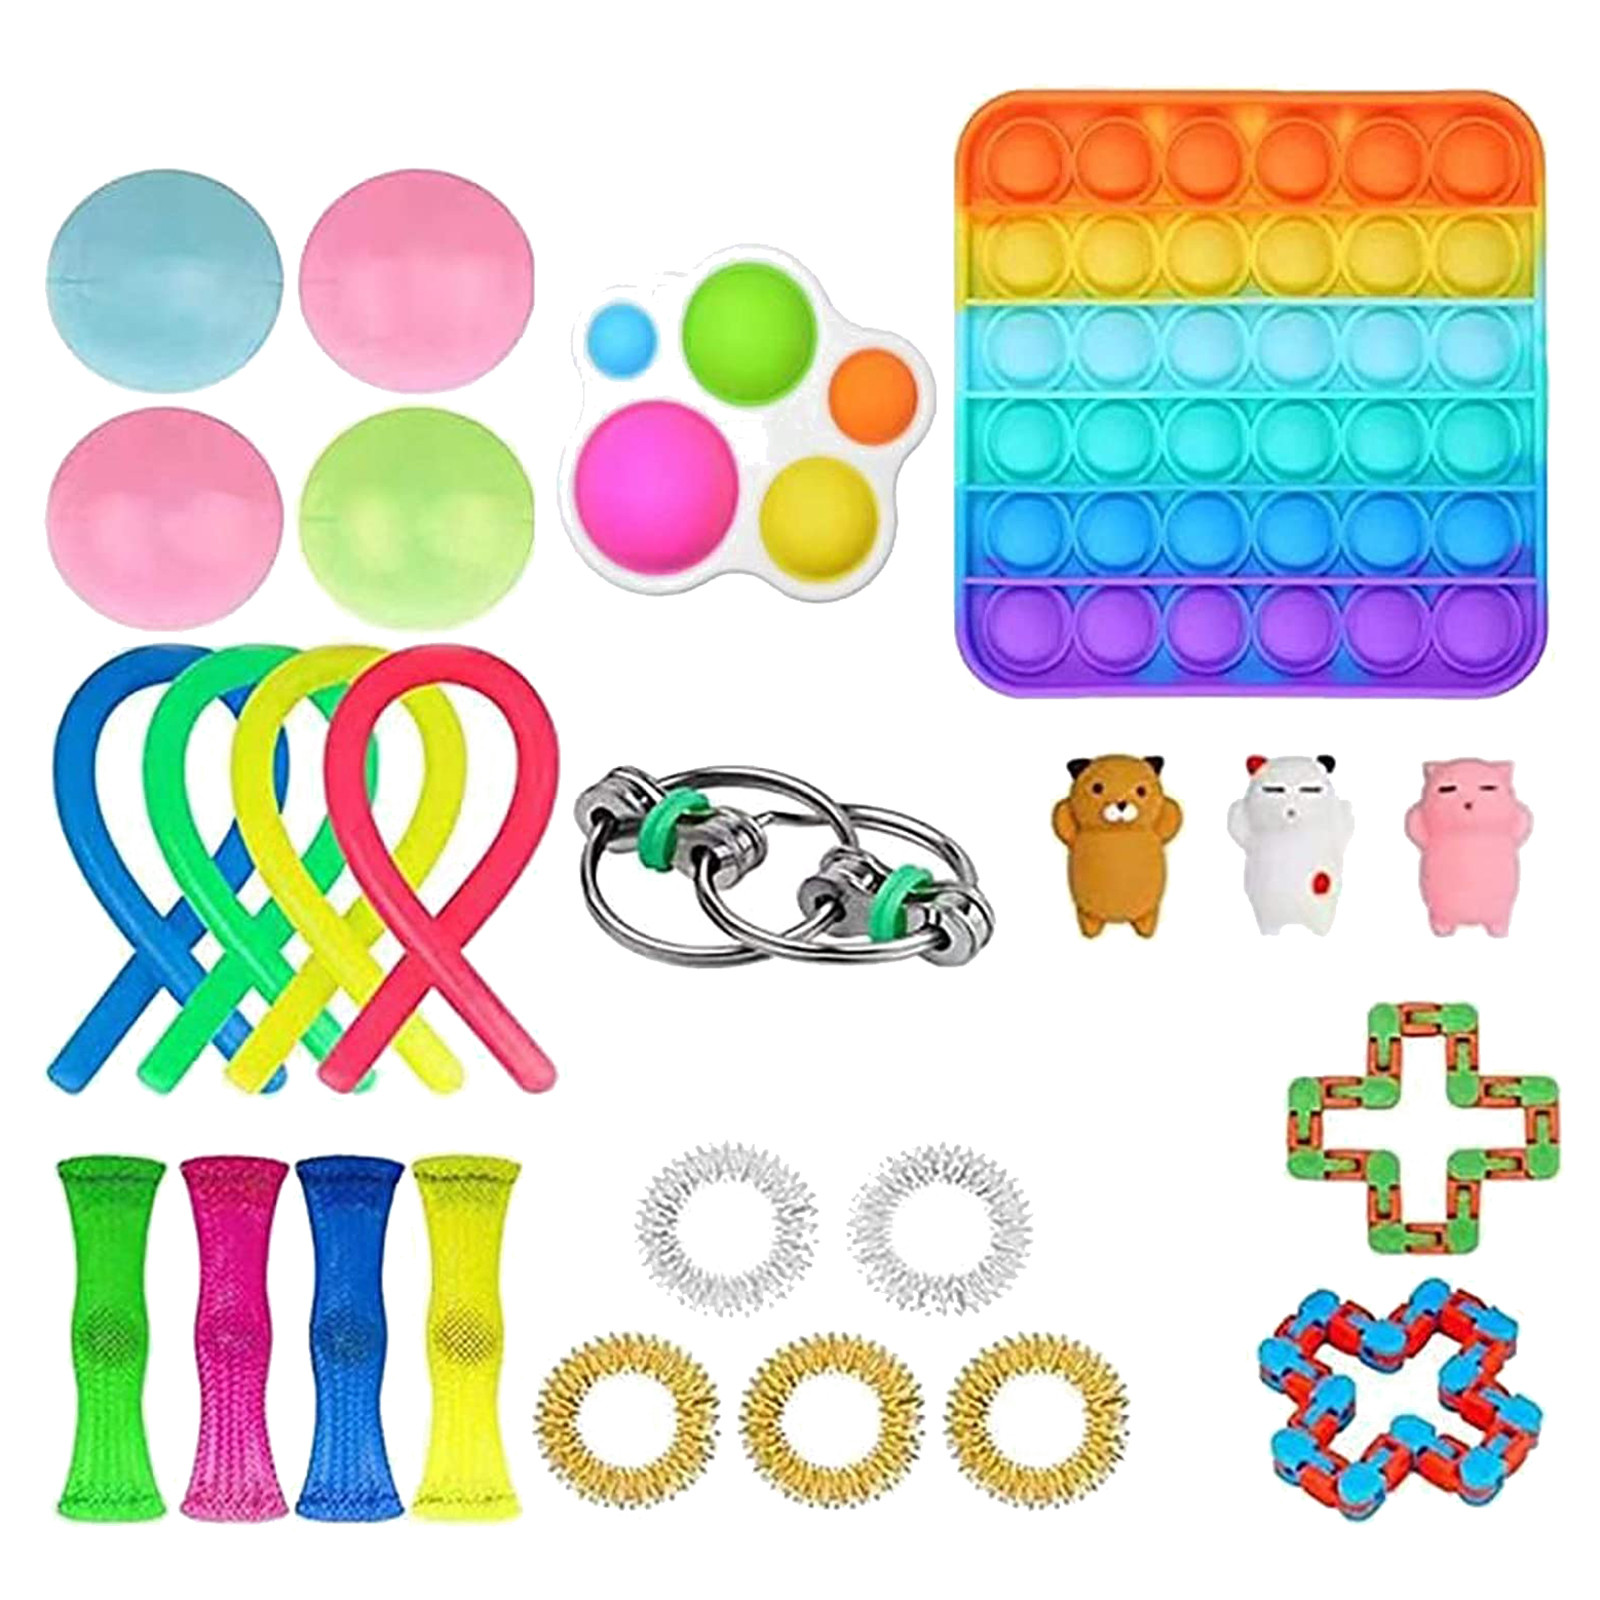 Fidget-Toys Antistress-Set Gift-Pack Squishy Sensory Pop-It Stretchy Strings Relief Adults